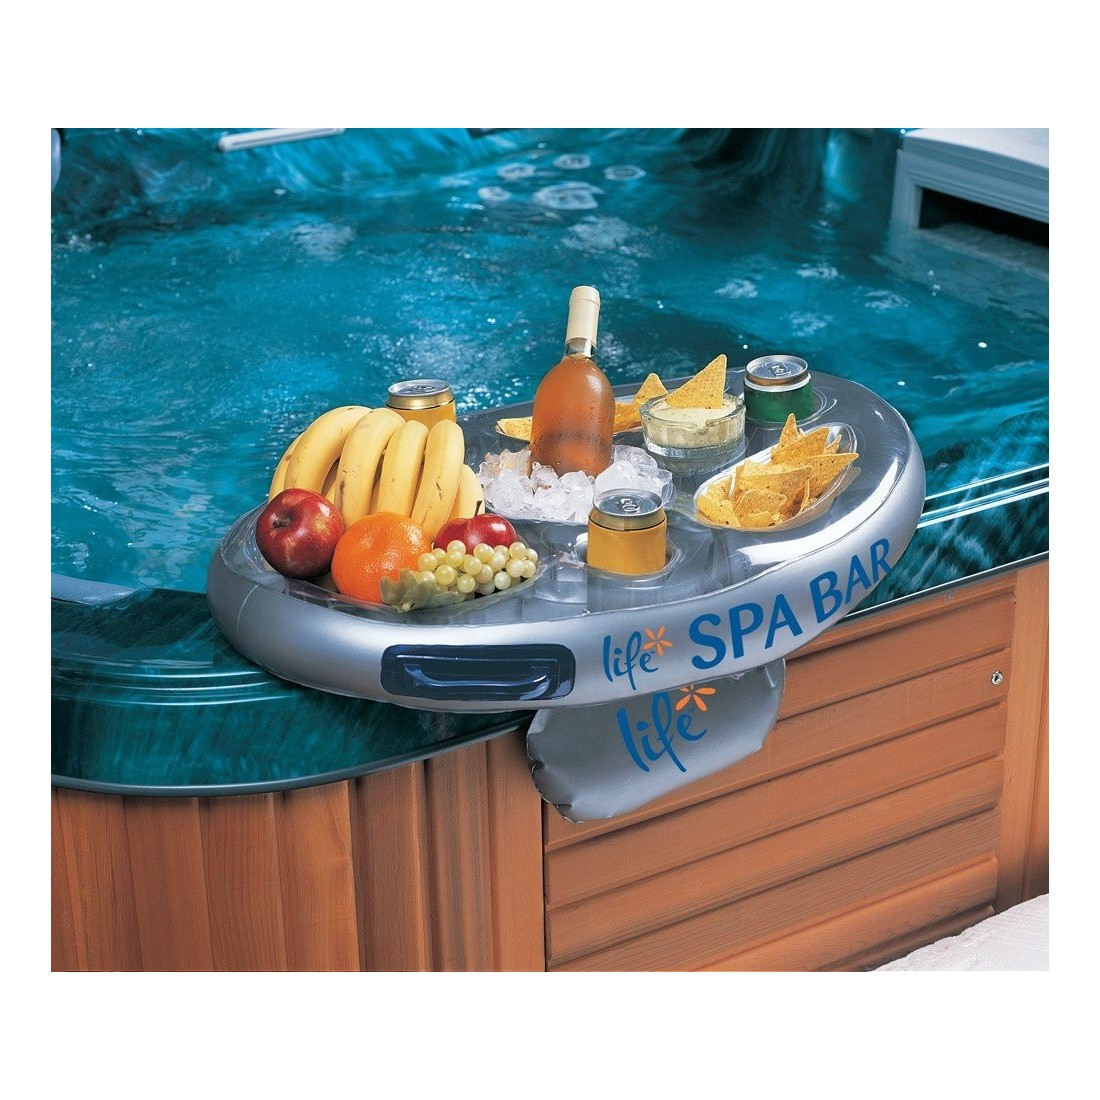 Spa bar plateau flottant spa bar gonflable vous for Plateau piscine flottant